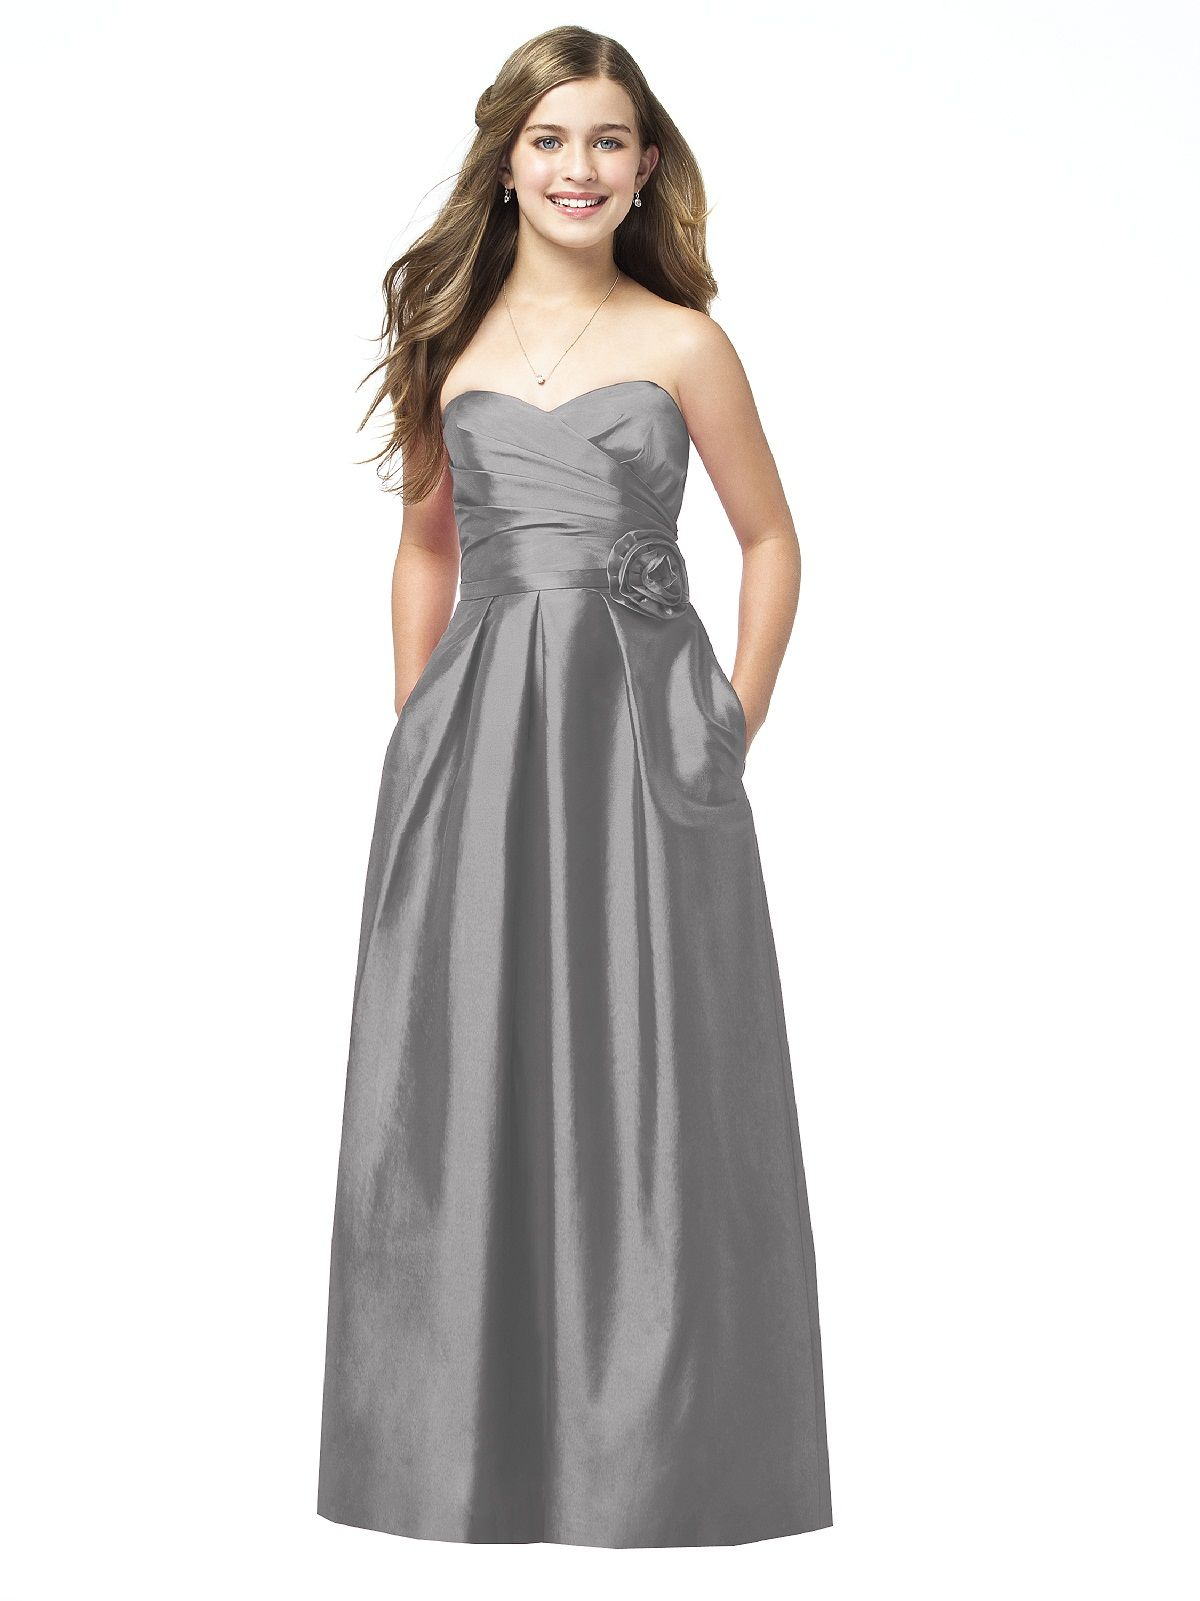 Bridesmaid dress swatstyle bauble babes pinterest bridesmaid dress ombrellifo Image collections